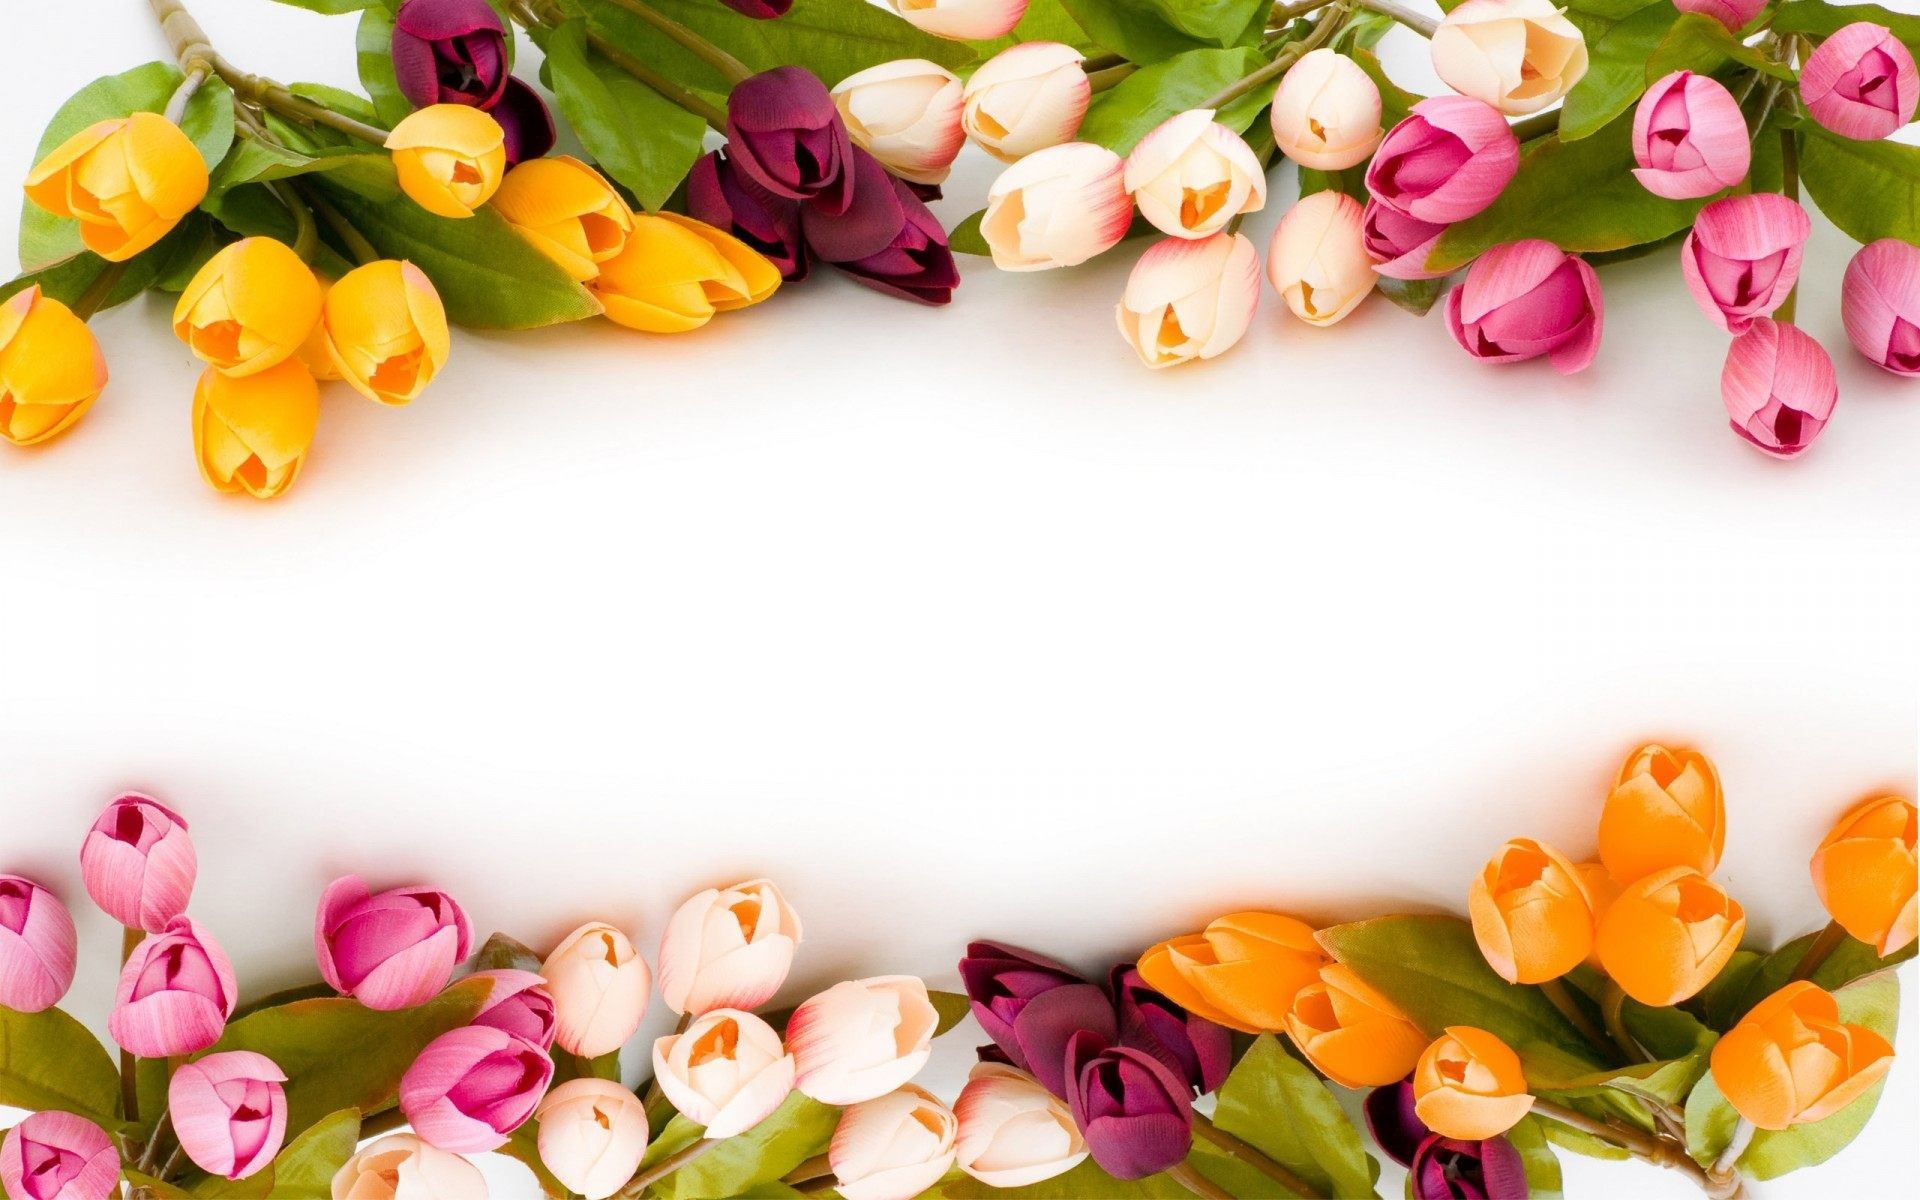 Flower Background Wallpapers Hd Wallpaper Collections